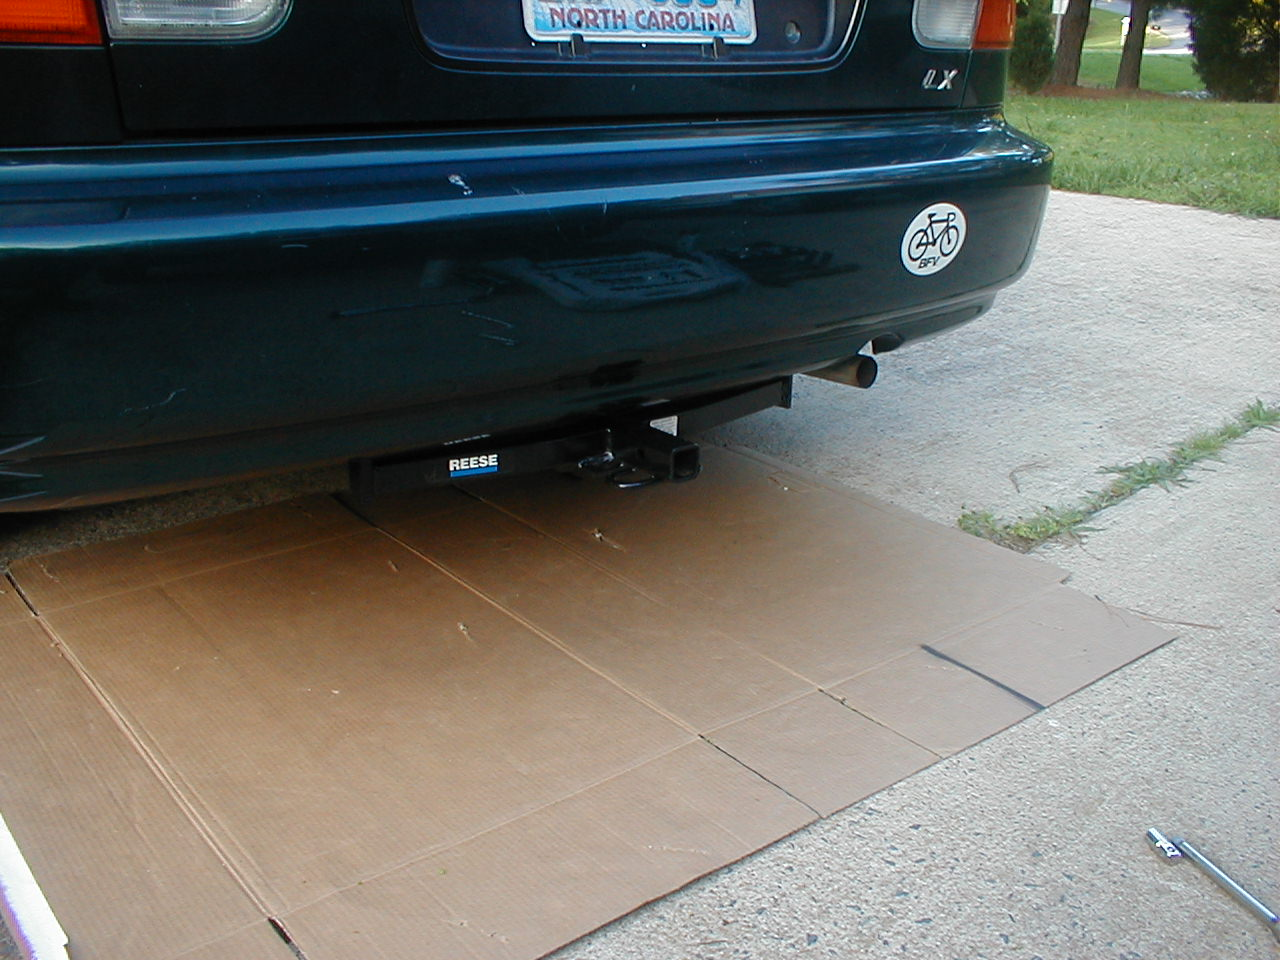 Installing a trailer hitch on a small car